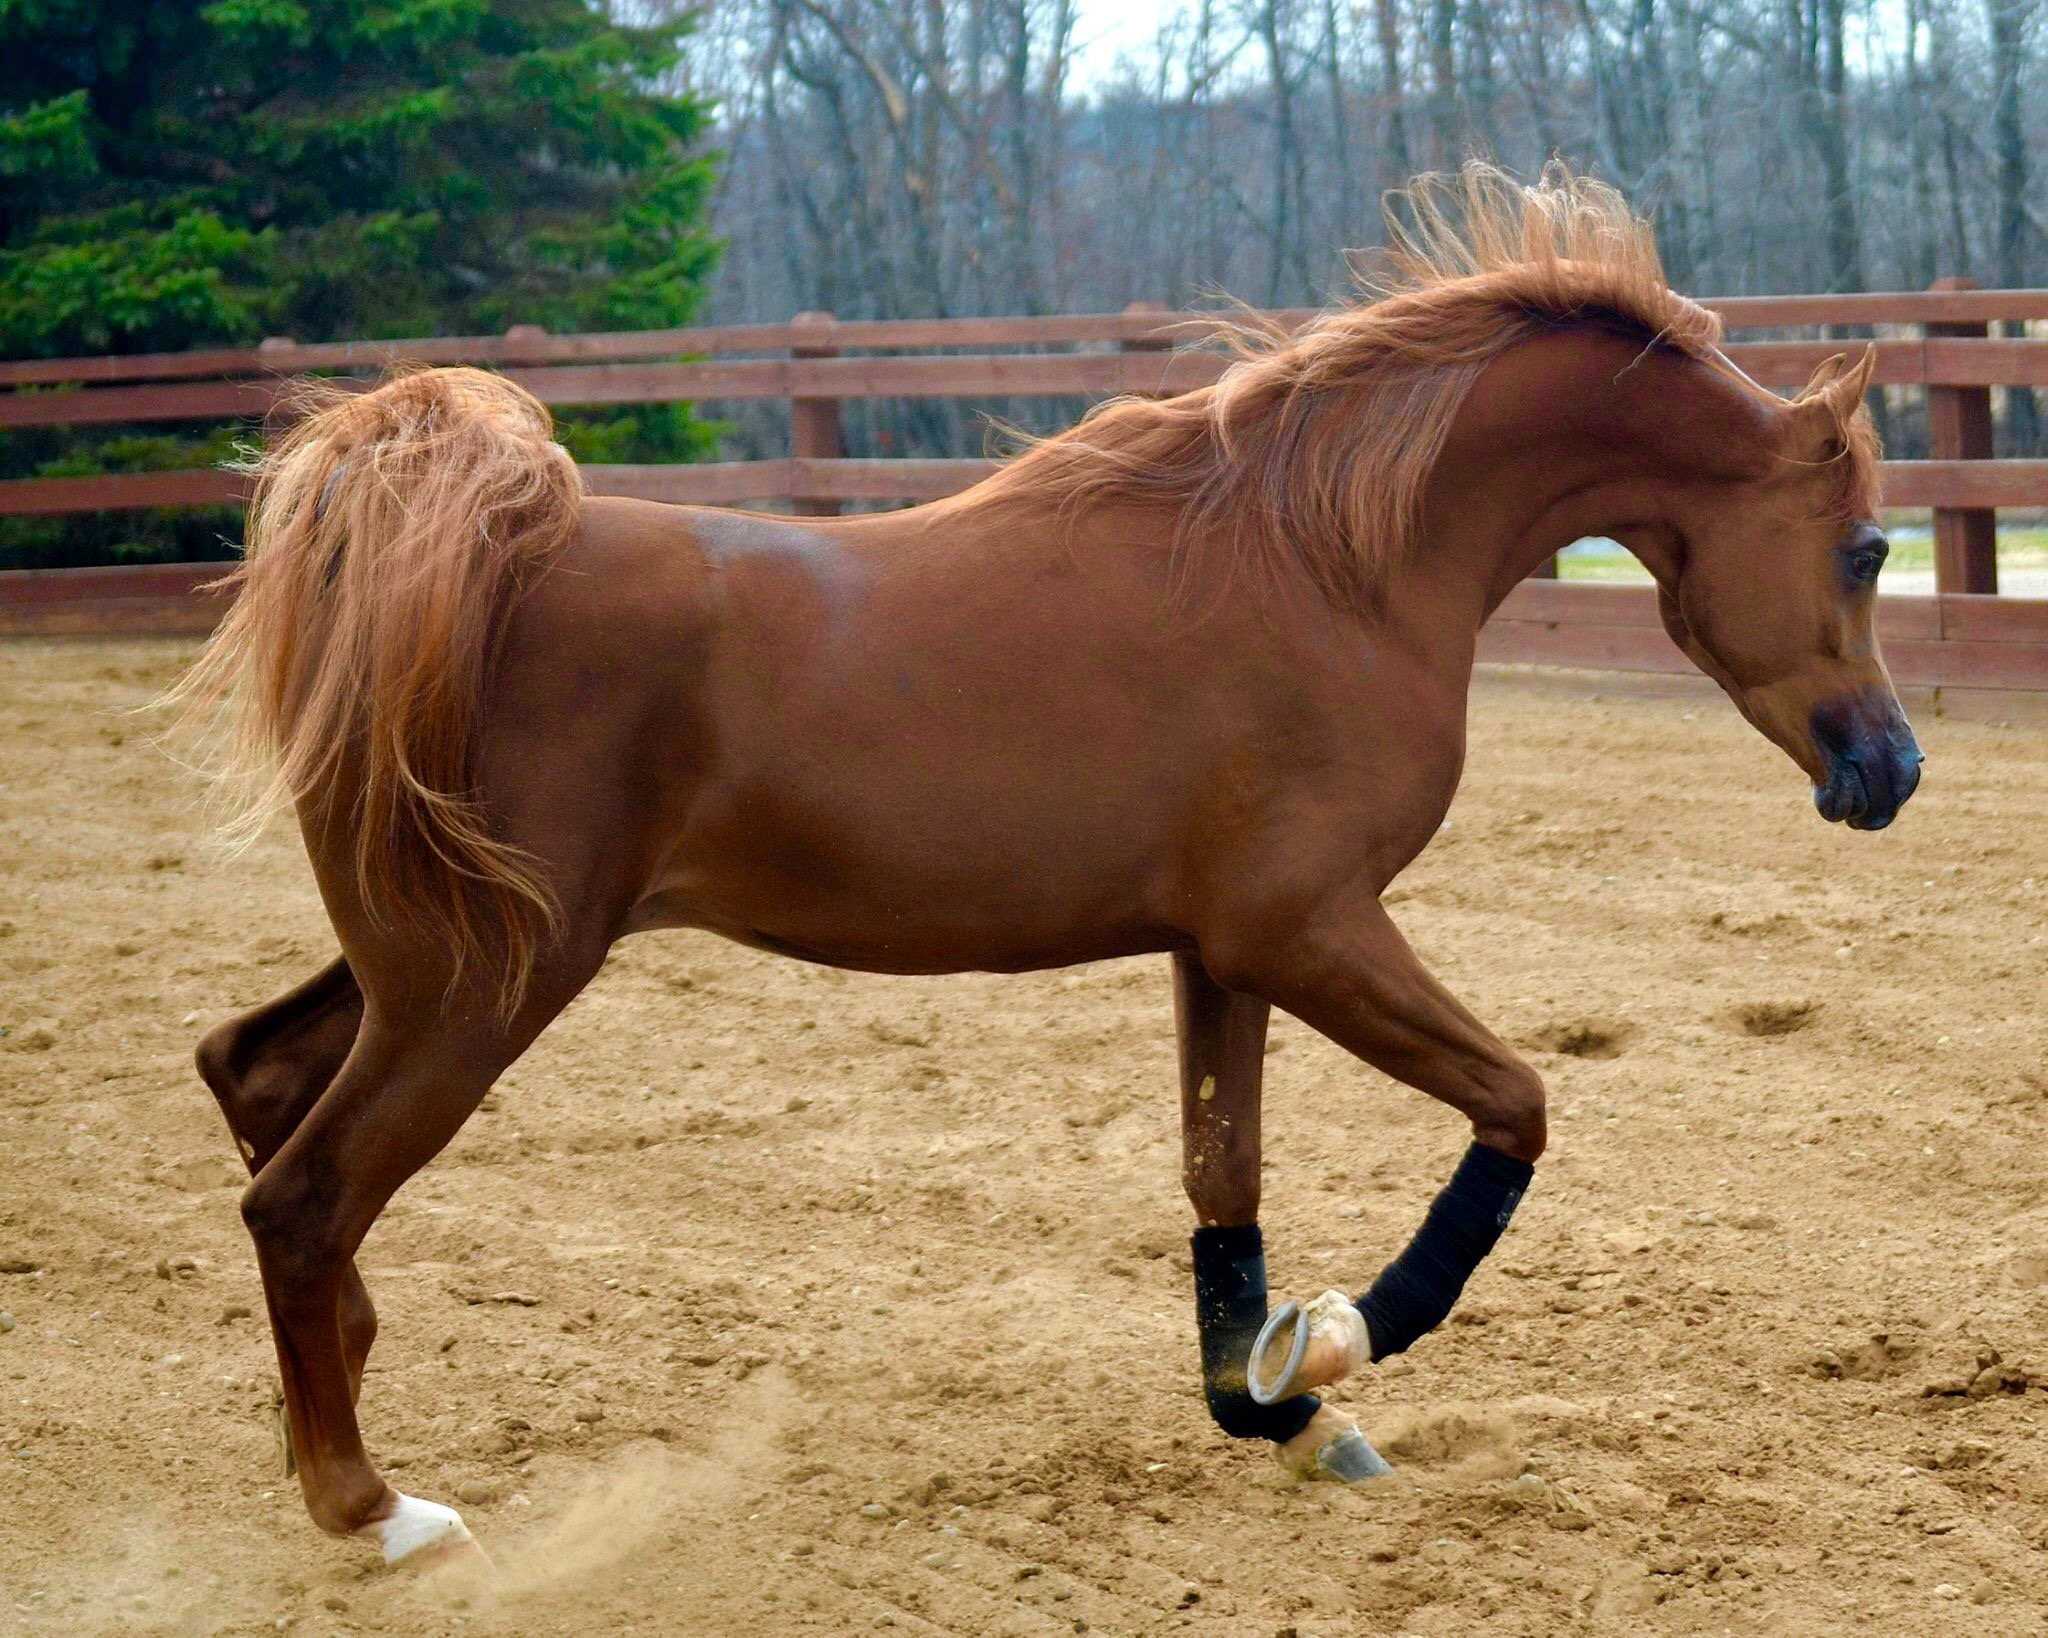 Imperatore horse vans for sale - Decadence Dha Sf Veraz X Neveah Dha May 9 2015 Chestnut Colt